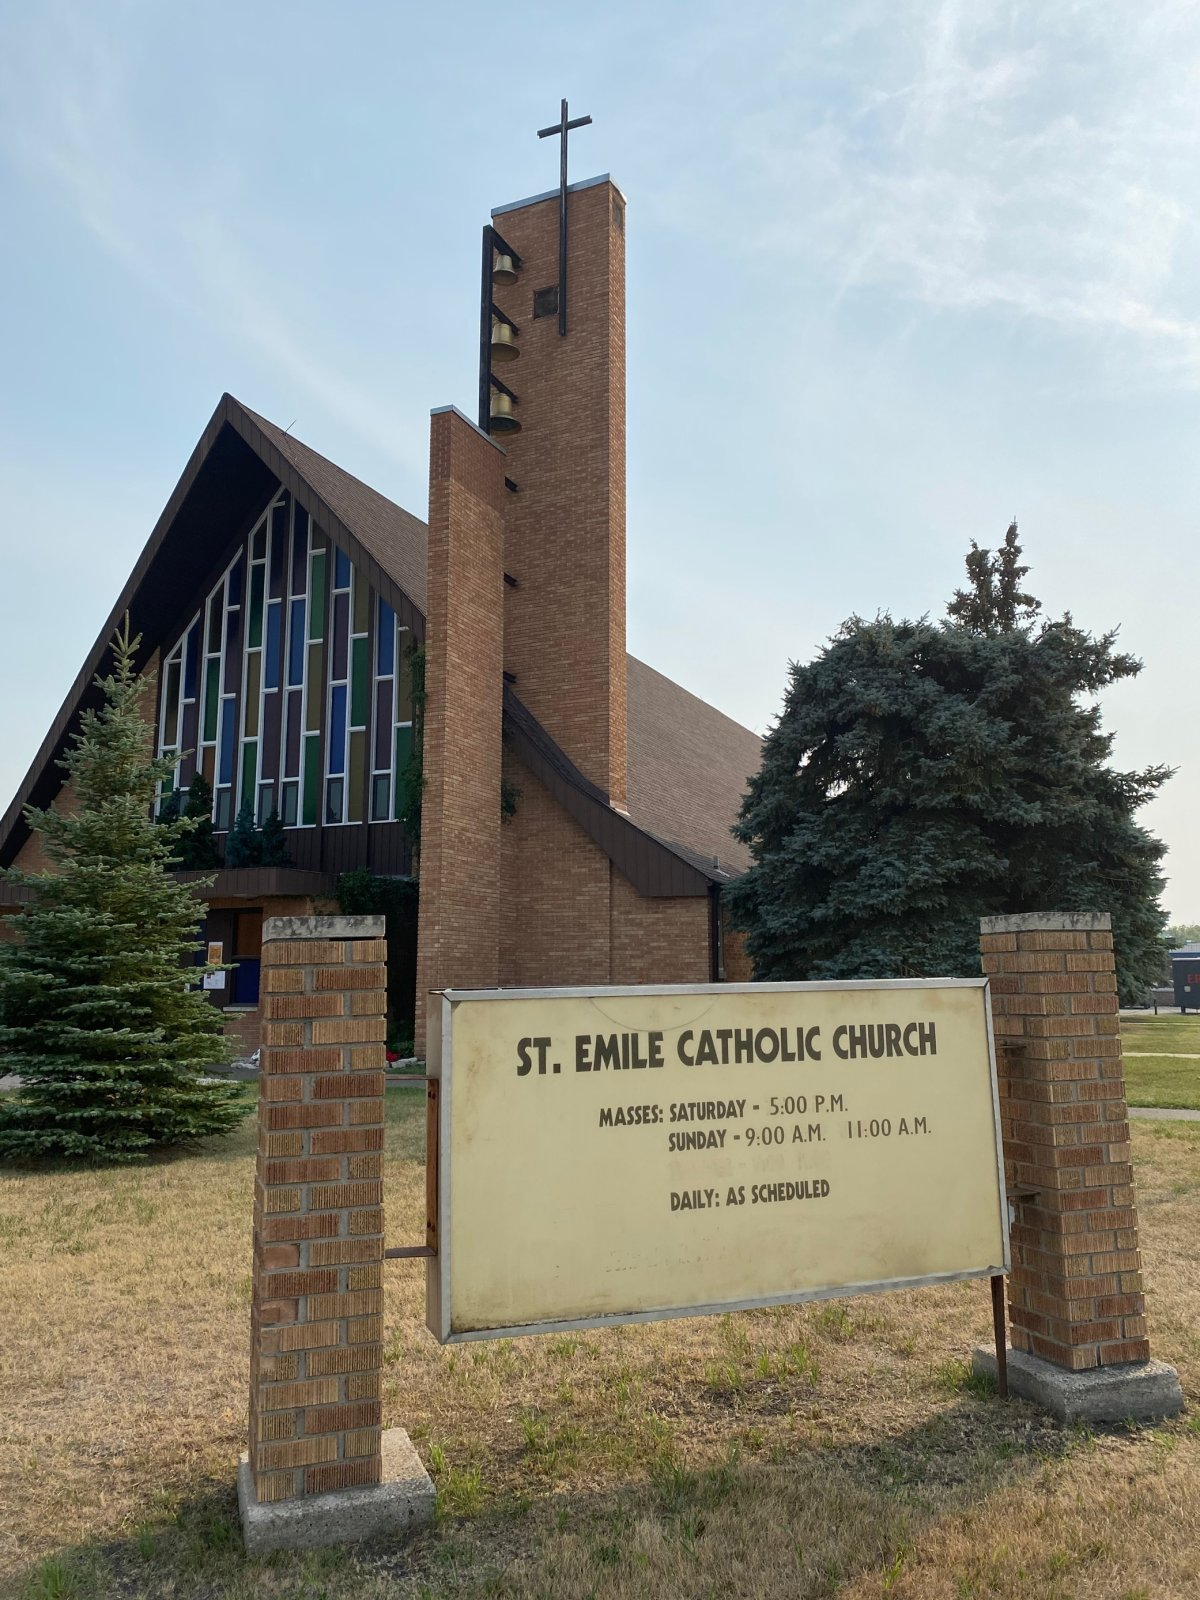 """The Archdiocese of Saint Boniface says it decided to cancel mass at St. Emile Catholic Church in Winnipeg after police warned """"angry"""" comments were made against the church on social media."""